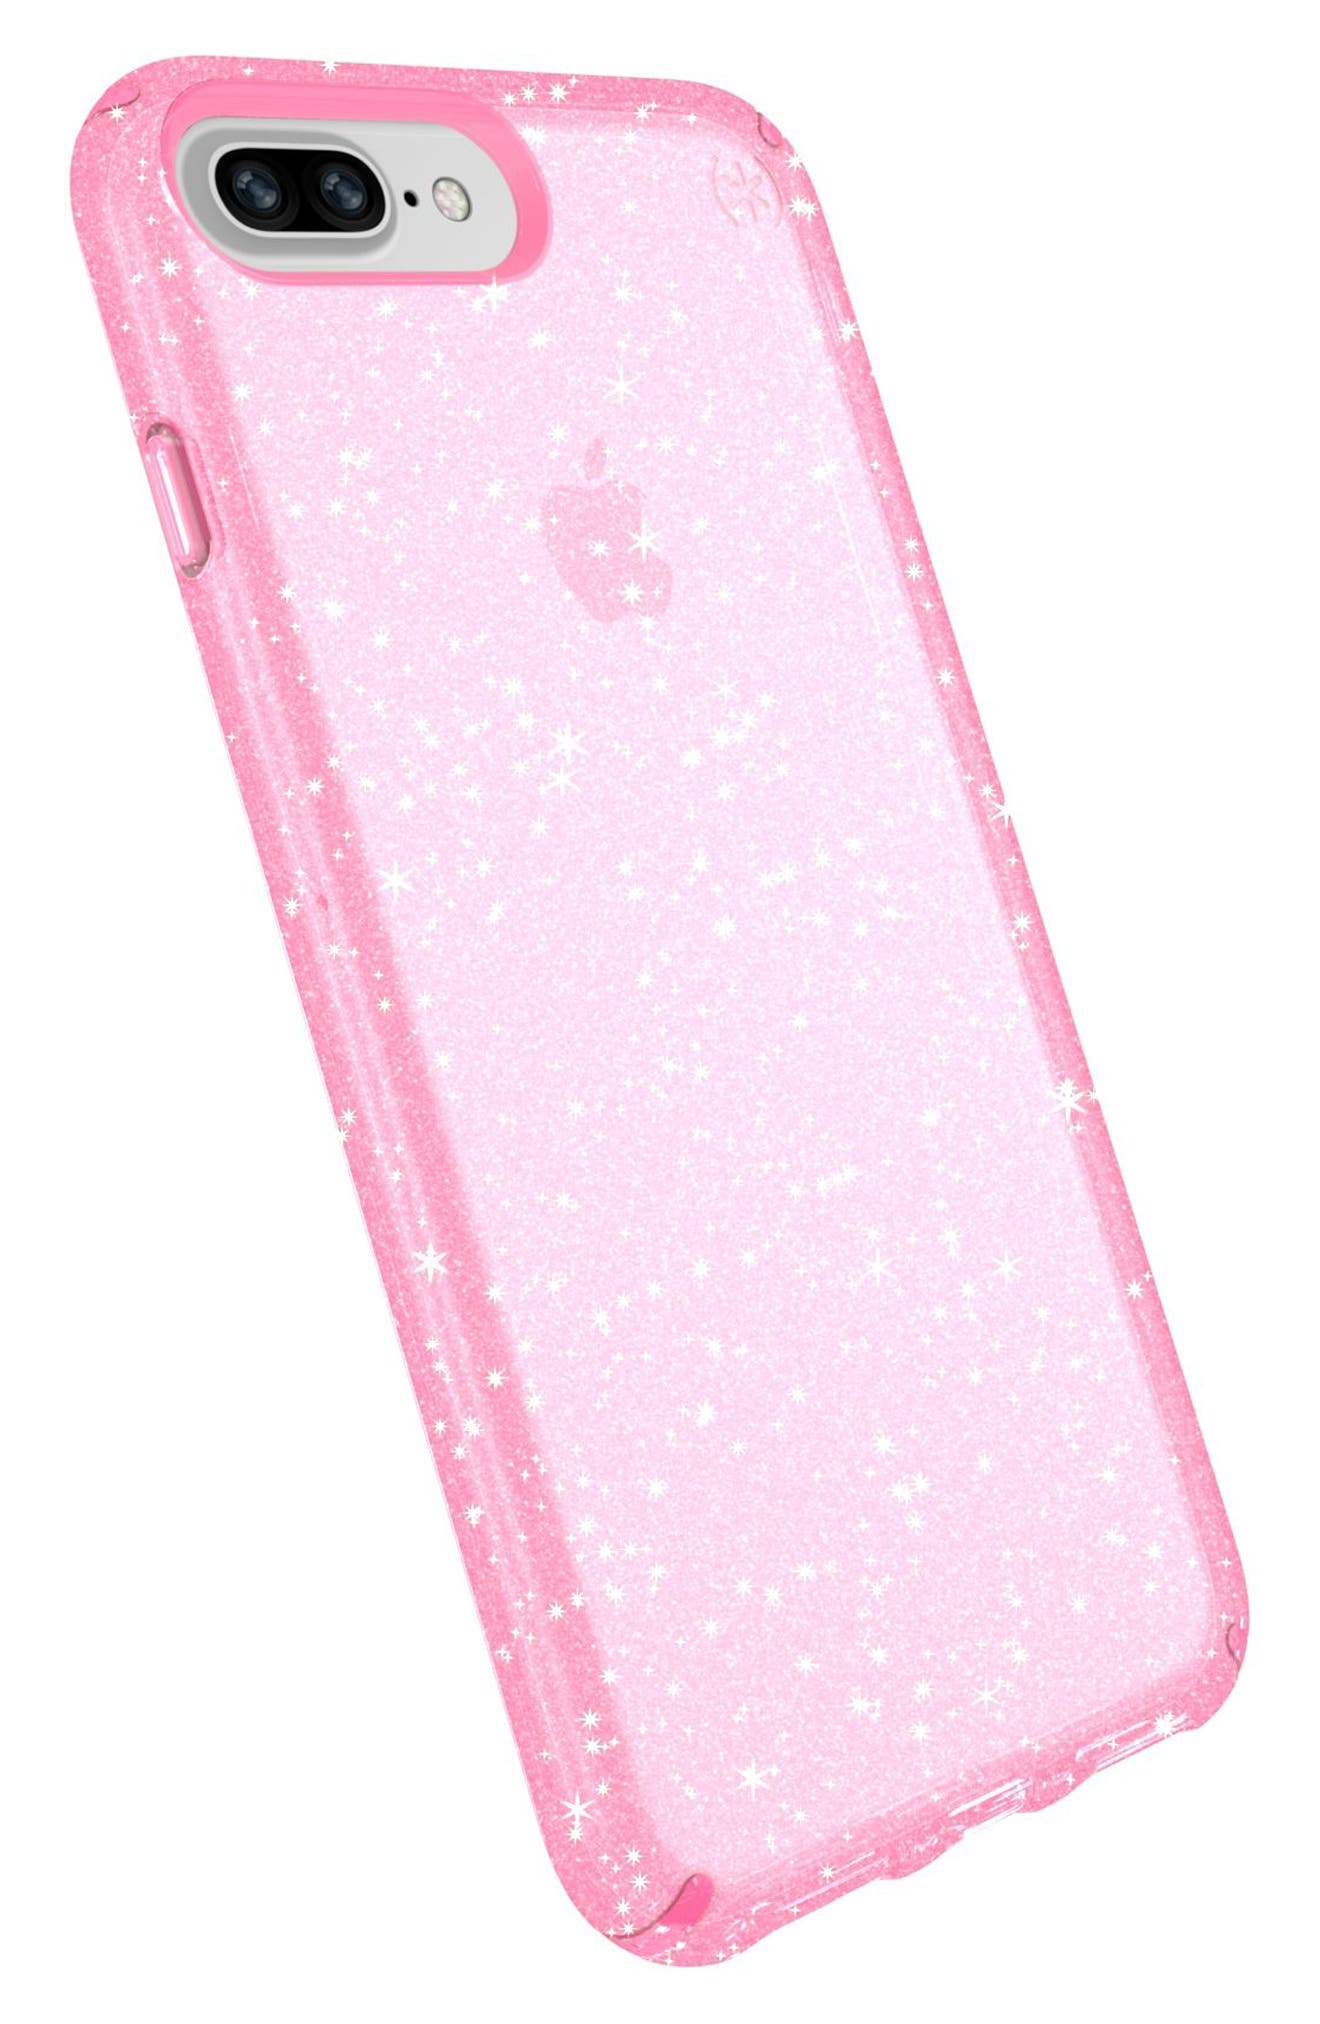 iPhone 6/6s/7/8 Plus Case,                             Alternate thumbnail 8, color,                             BELLA PINK GOLD GLITTER/ PINK